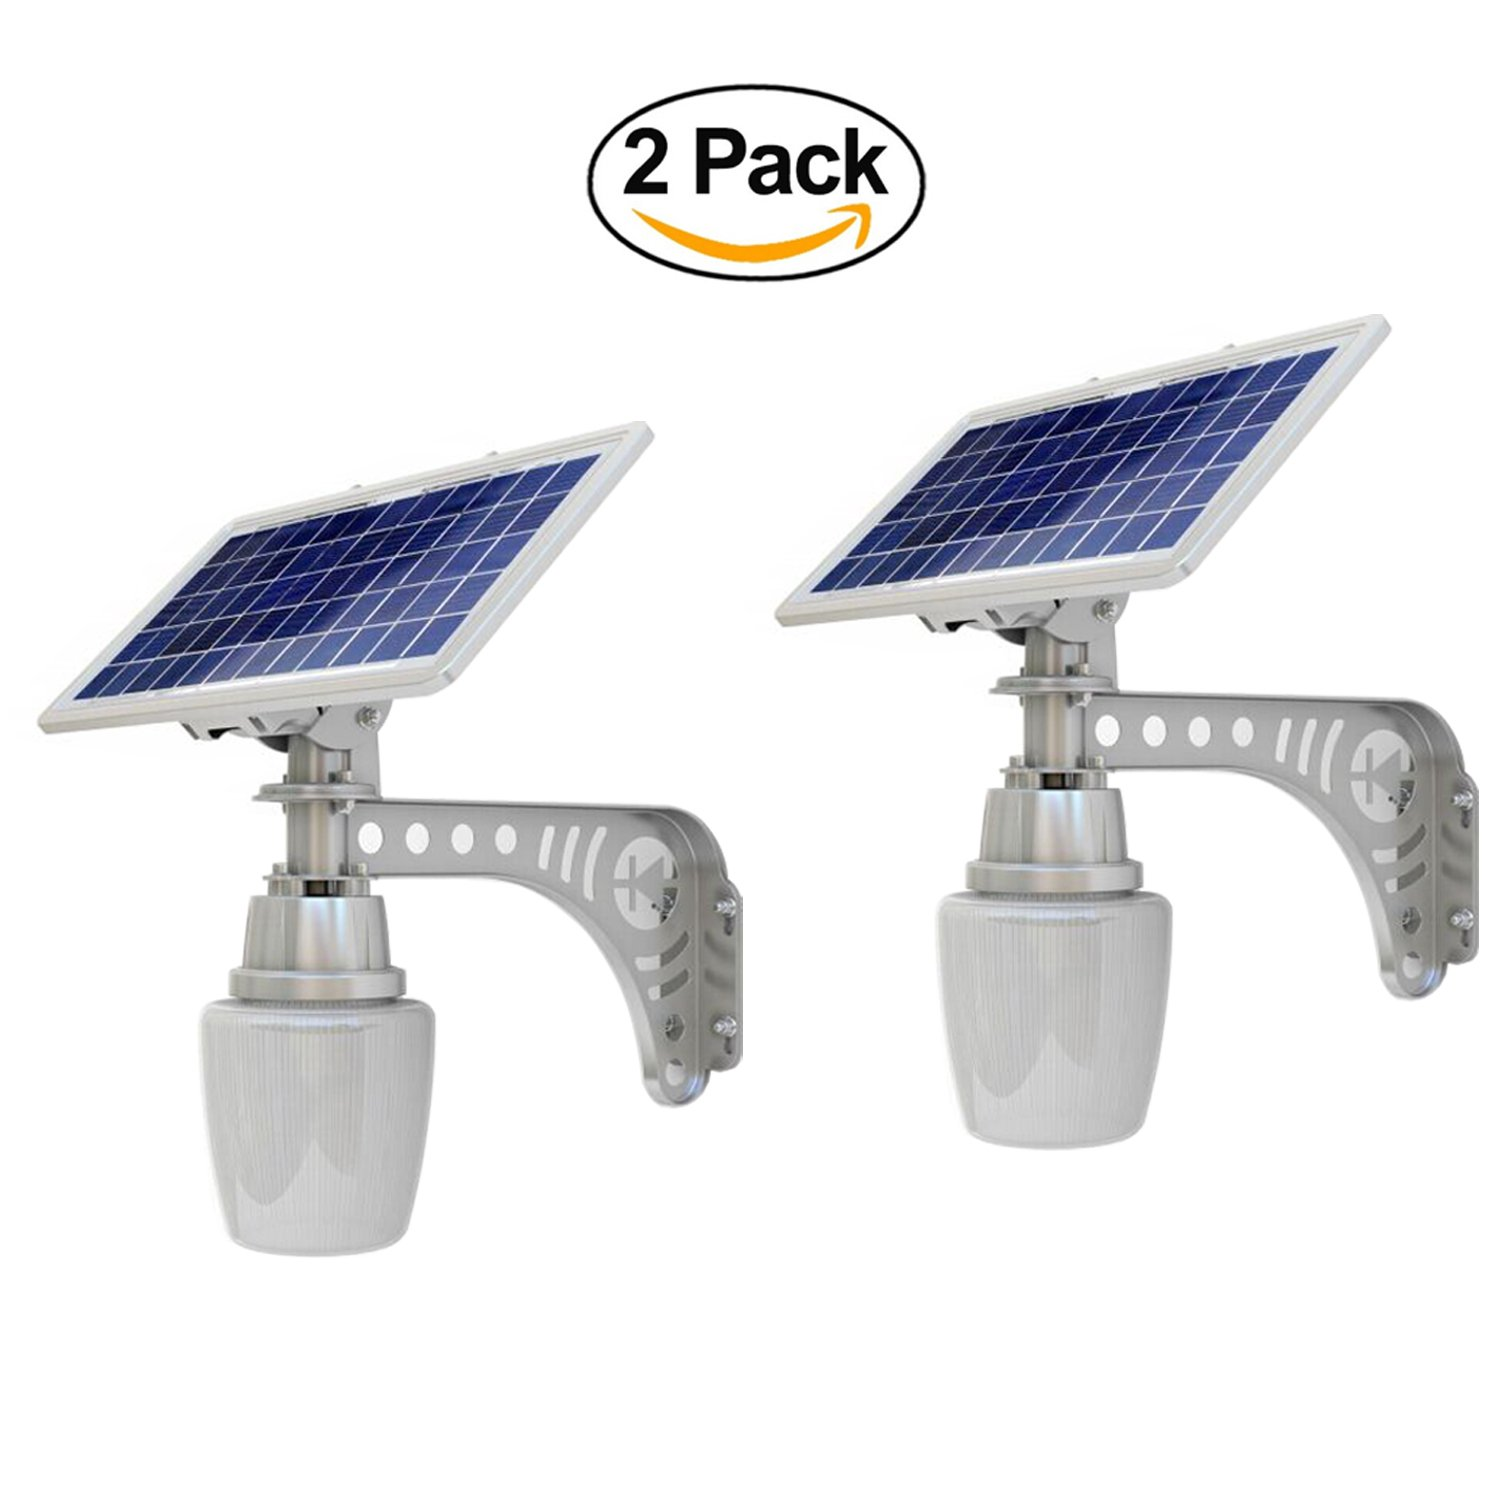 BrightLyf 2X PACK Solar Street Light Outdoor Courtyard IP65 Wall Mount Deck Night Lights Security Lamp Commercial by BrightLyf